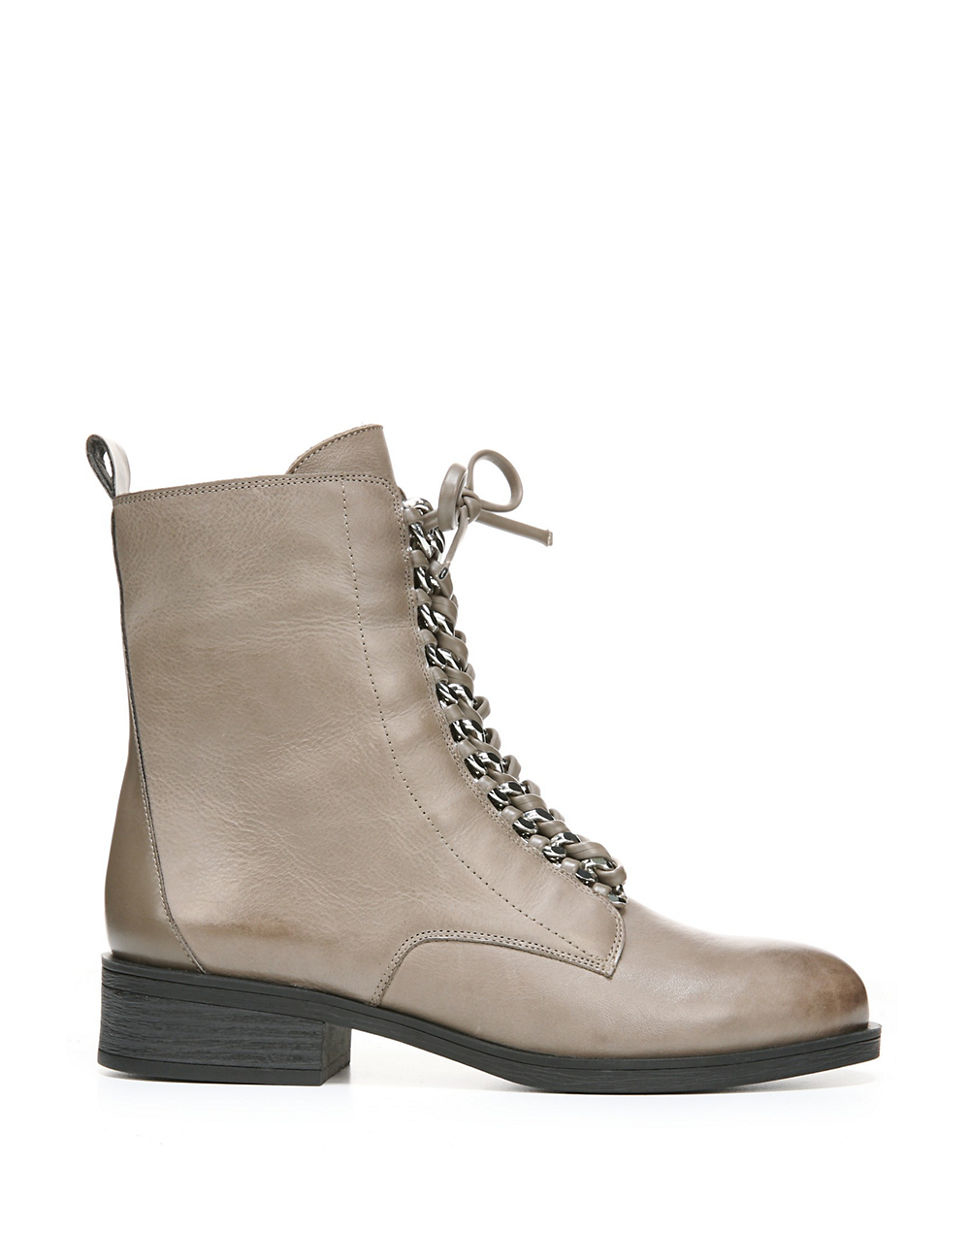 Fergie Nemo Leather Ankle Boots in Gray - Lyst Fergie Shoes